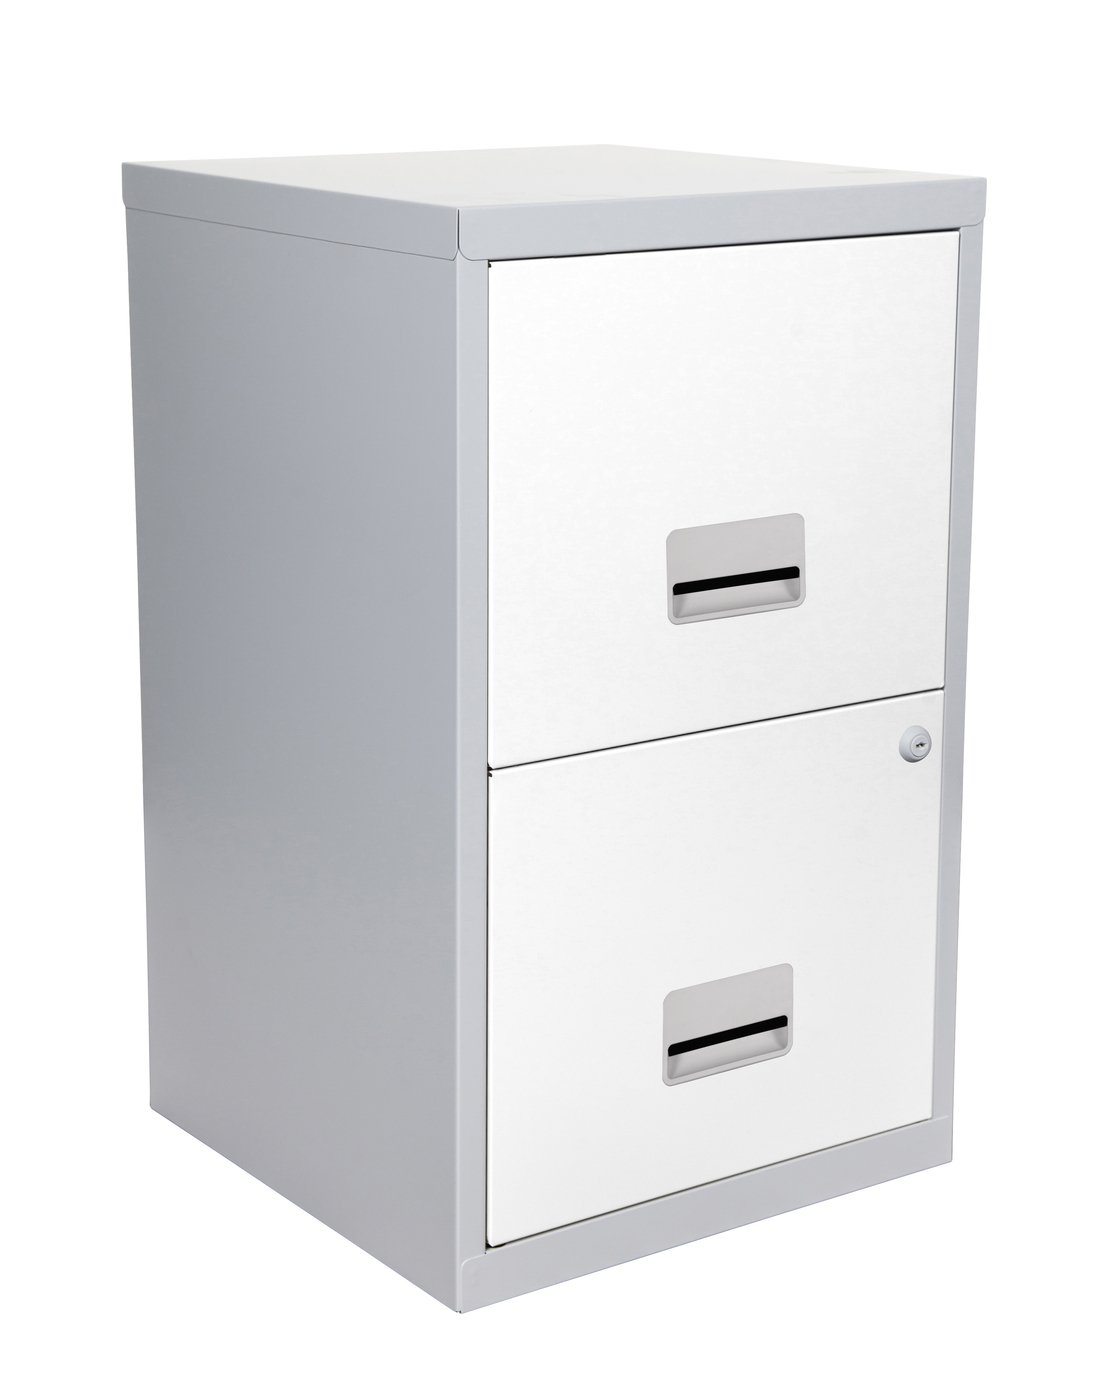 buy 2 drawer metal filing cabinet - silver and white at argos.co